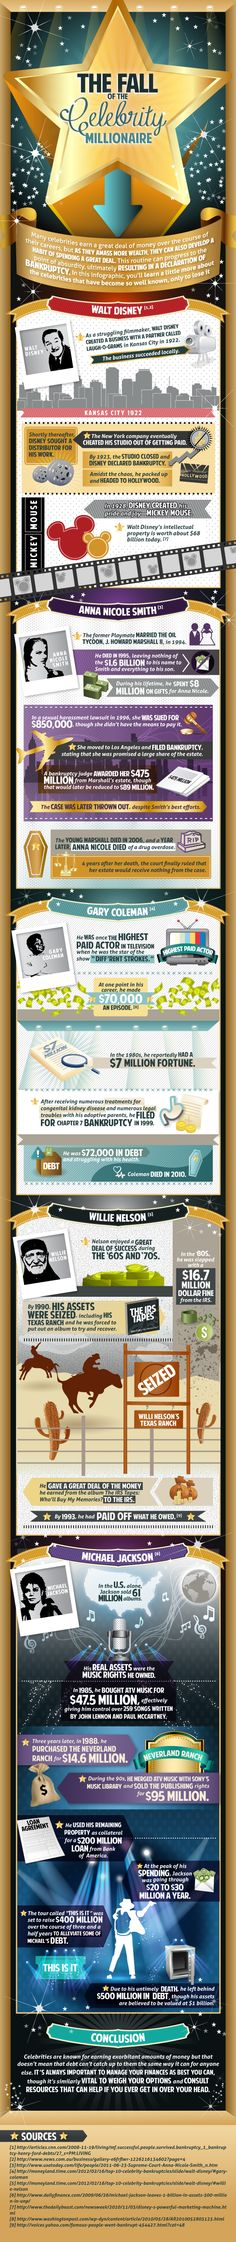 Many celebrities make a lot of money on the road to success but many find themselves having to declare bankruptcy when the money runs out. Check out this infographic, you'll learn a little more about the celebrities that have become so well known, only to lose it all.